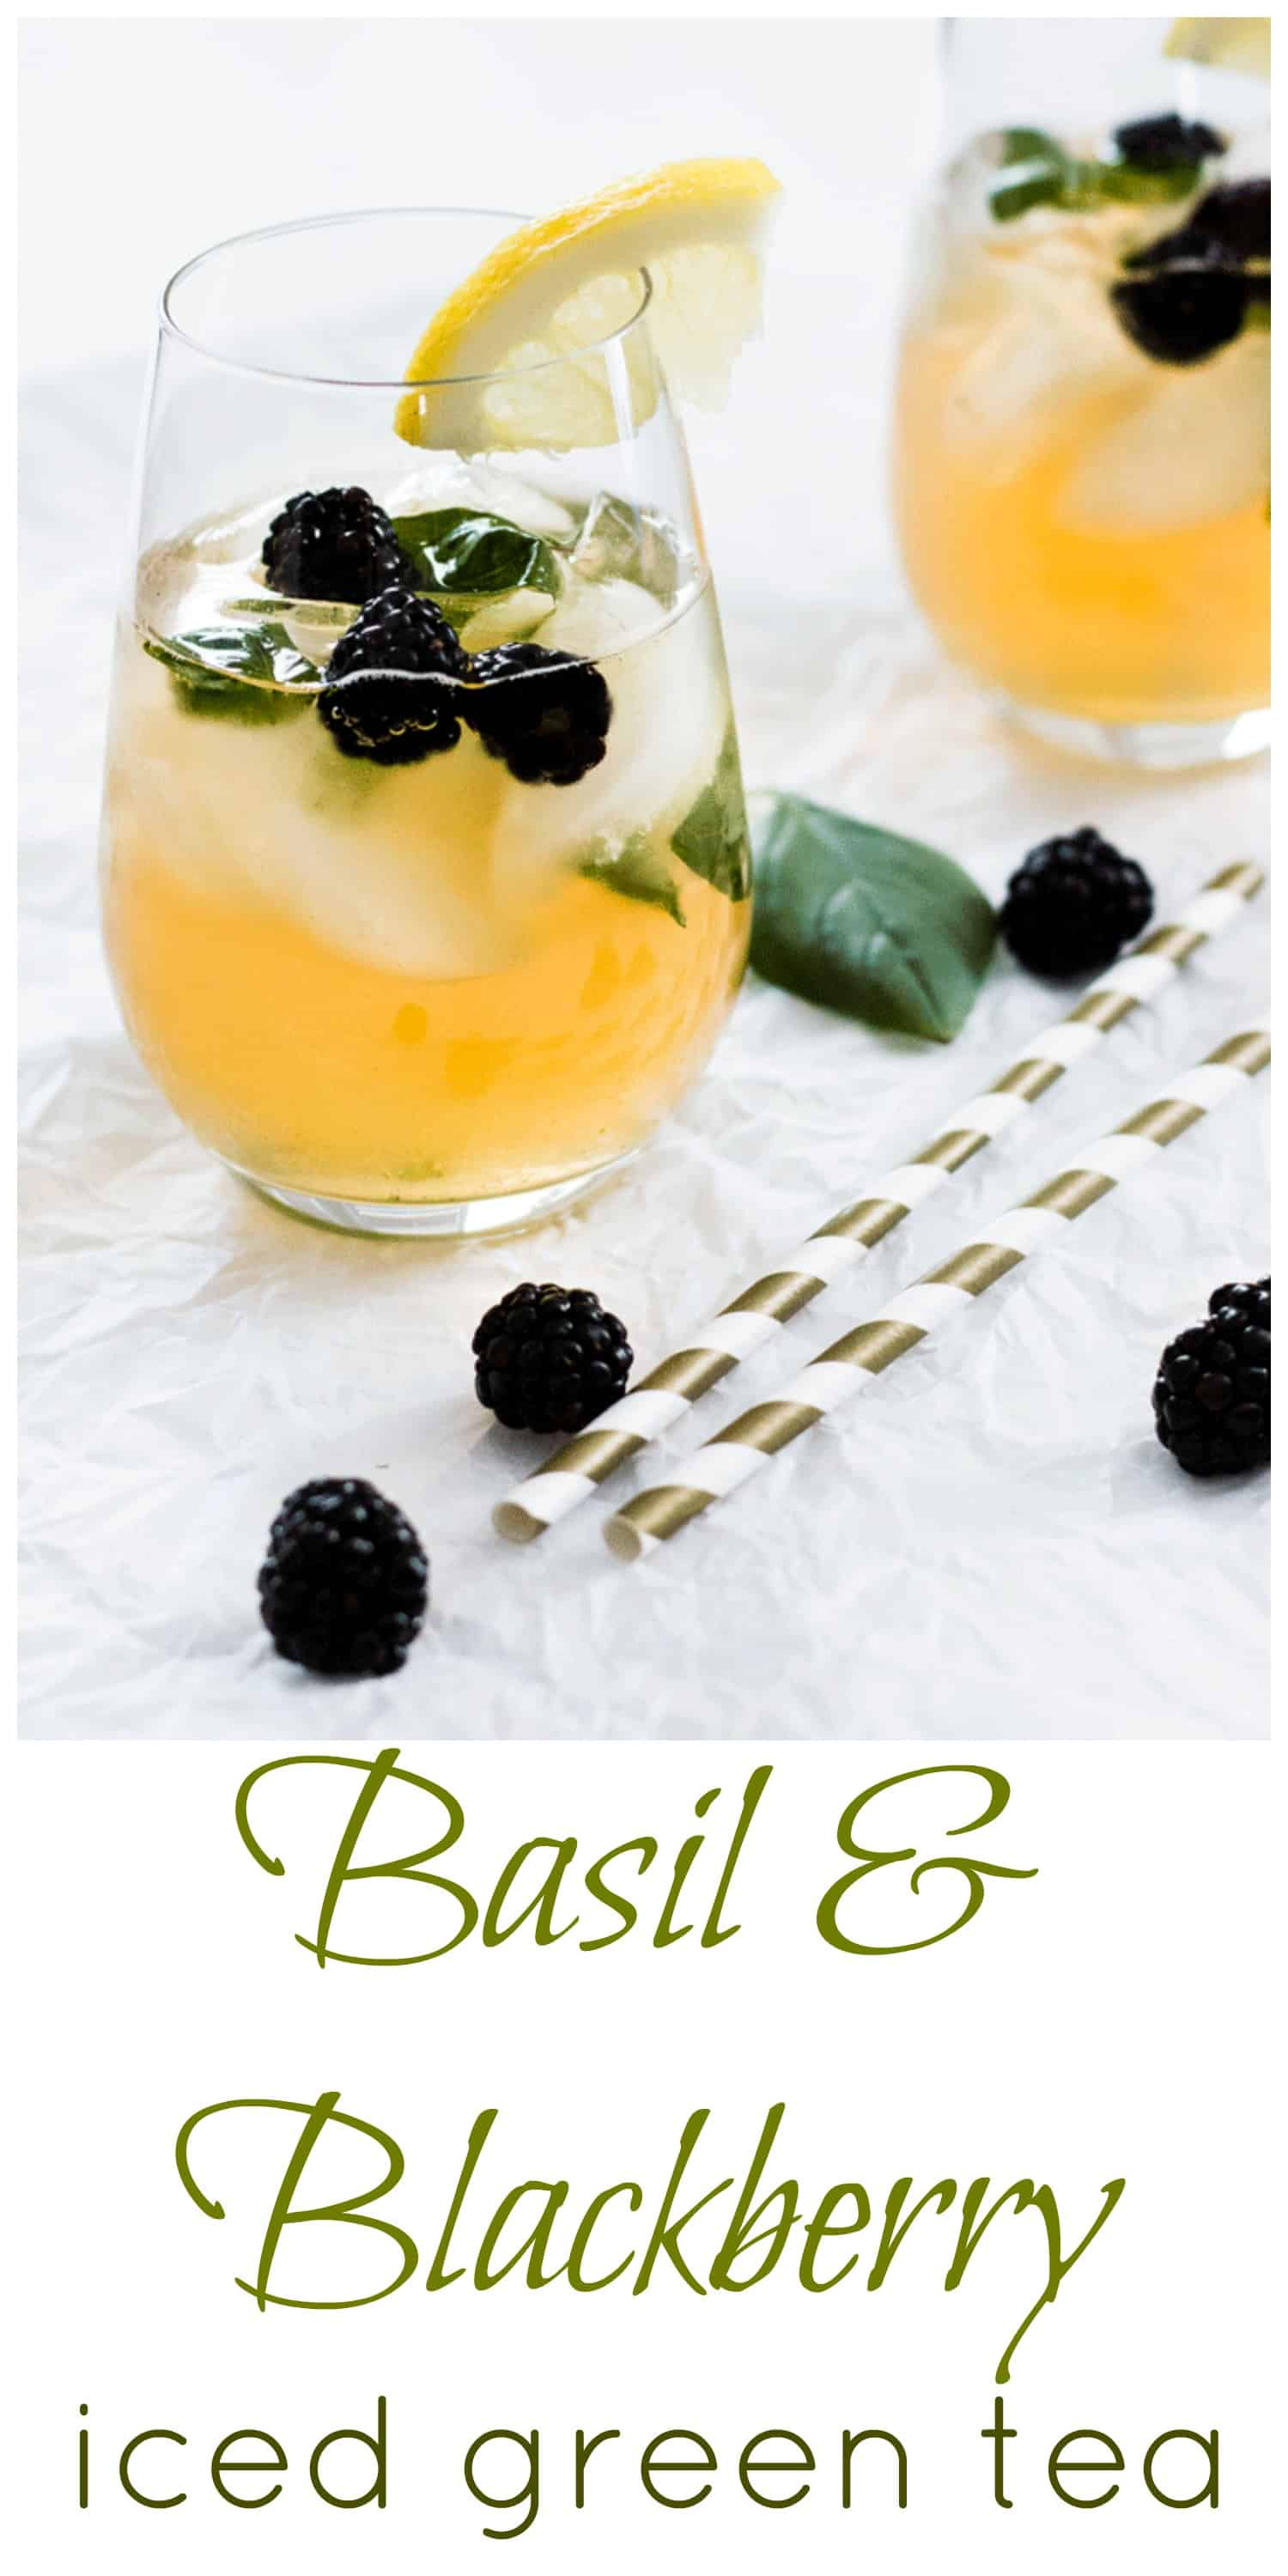 Basil and Blackberry Iced Green Tea. Naturally sweetened and simply delicious on a hot day